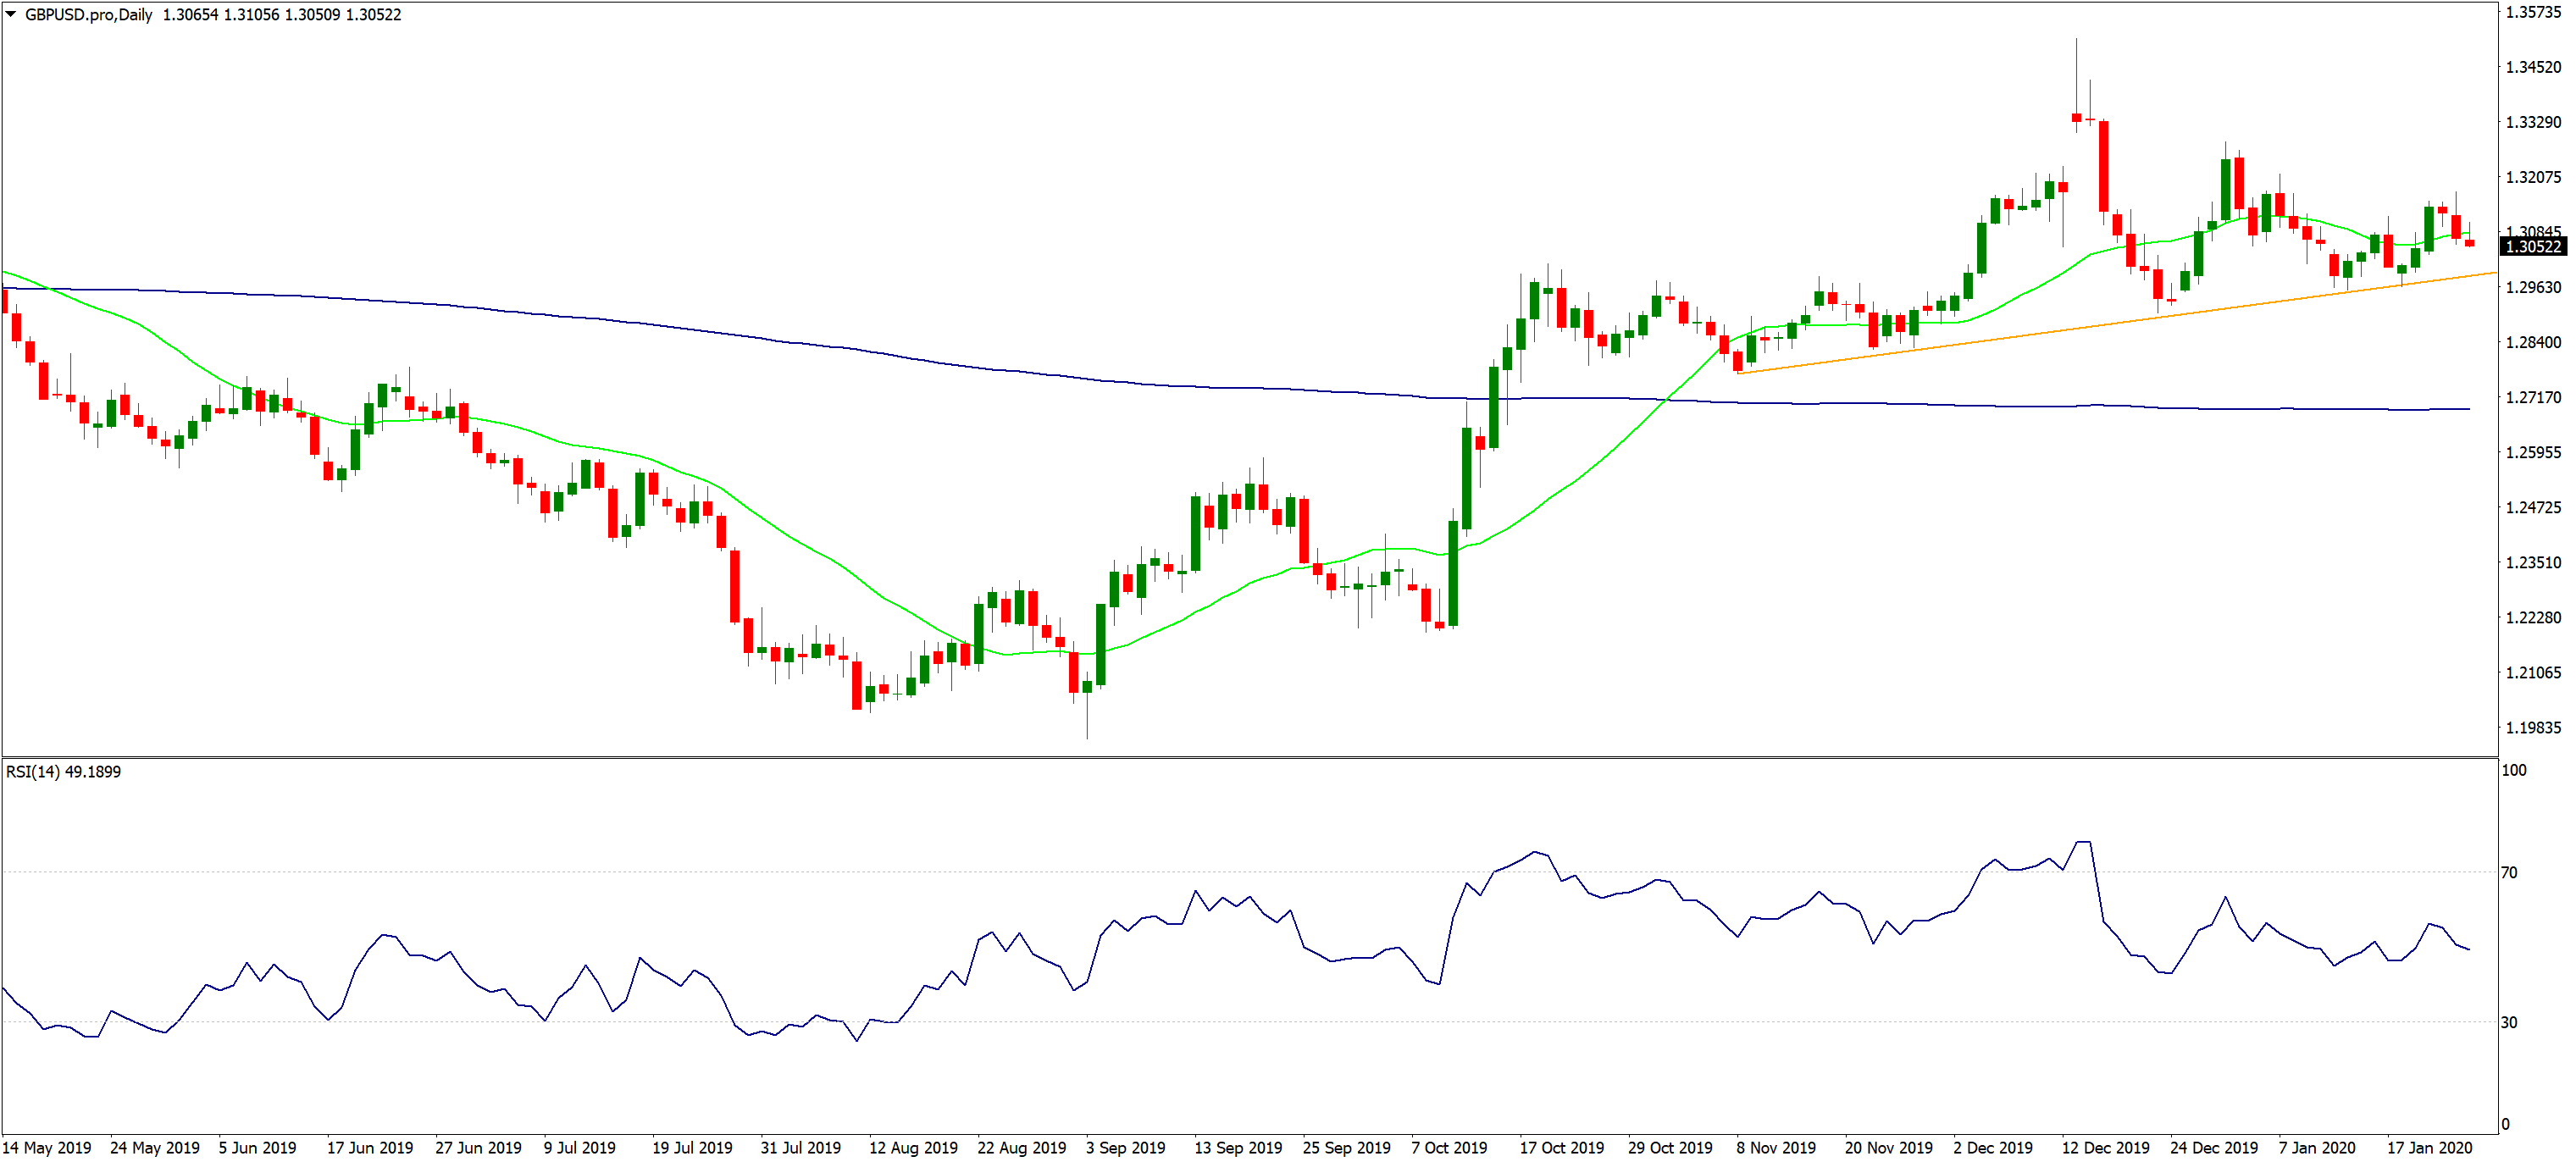 GBPUSD.pro Daily, Source: AxiTrader